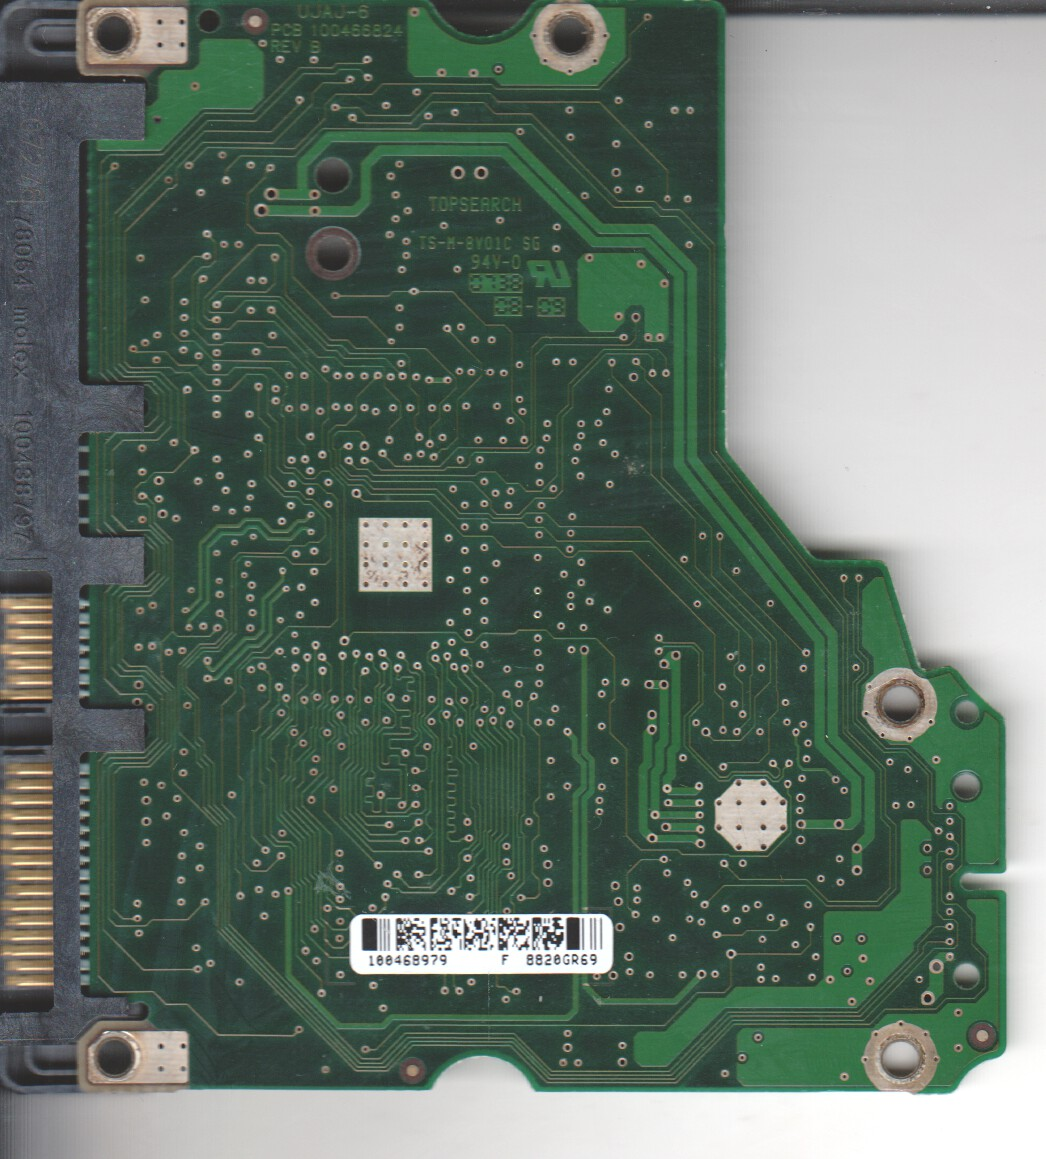 ST31000340AS, 9BX158-568, SD35, 100468979 F, REV B, Seagate SATA 3.5 PCB